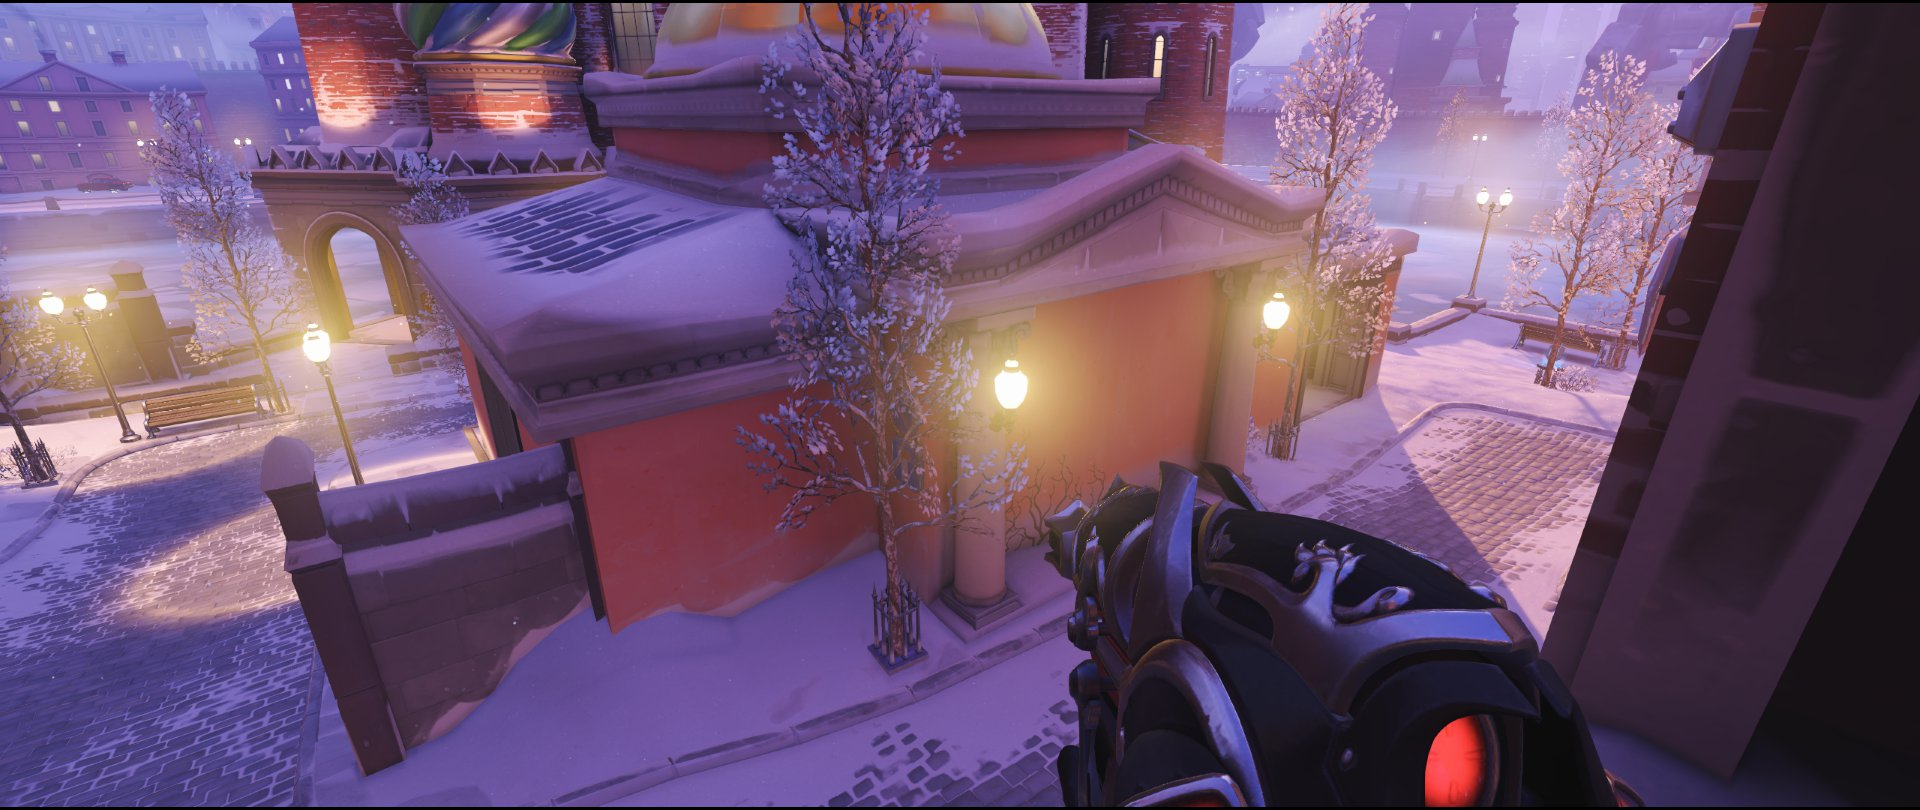 Window view defense sniping spot Widowmaker Volskaya Industries Overwatch.jpg